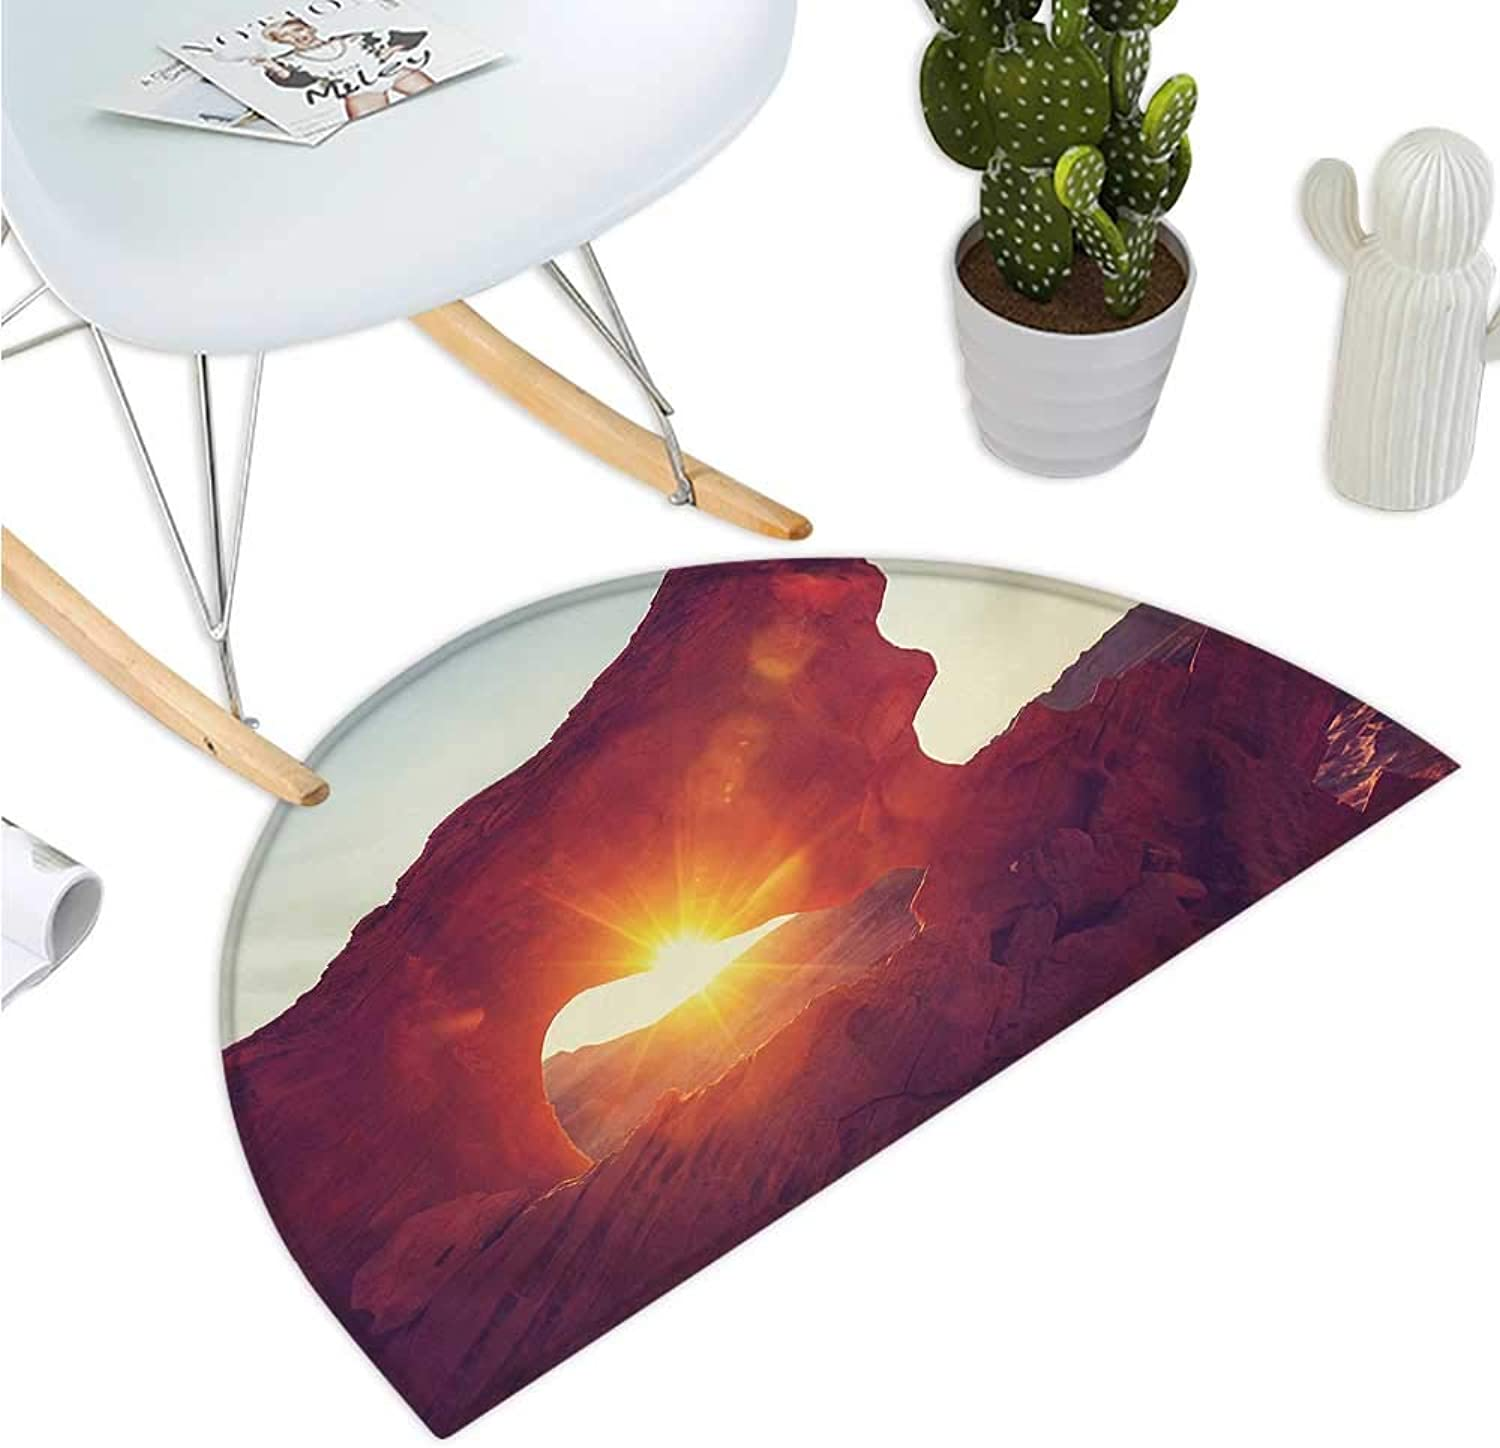 Canyon Half Round Door mats Sun Reflections Over Ancient Cave Shaped Little Cliff Hot Region Artifact Photography Bathroom Mat H 39.3  xD 59  orange